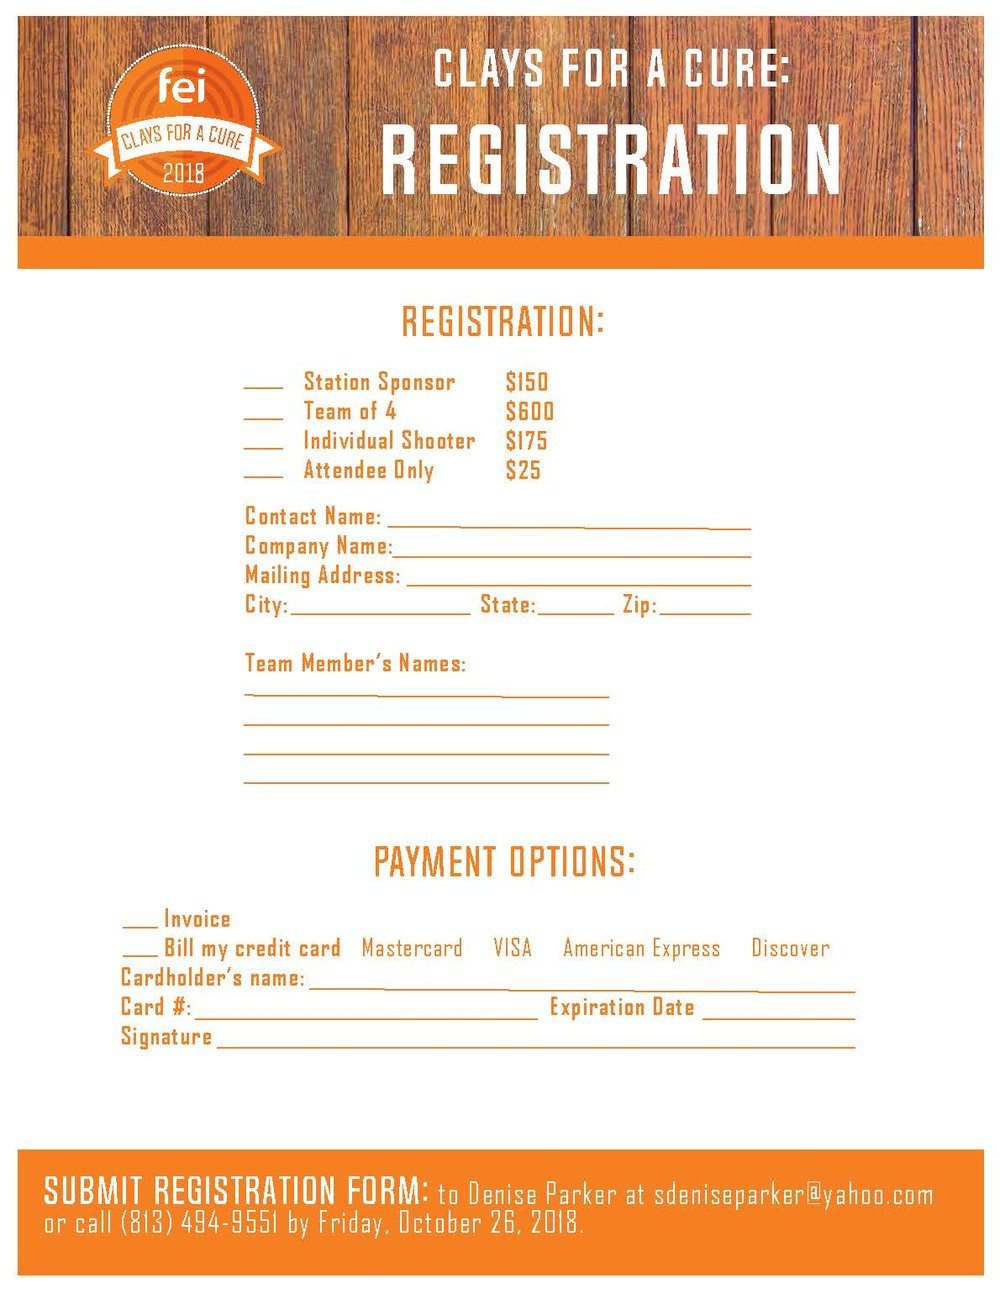 Clays for a Cure 2018 Registration NOV 9_Page_3.jpg